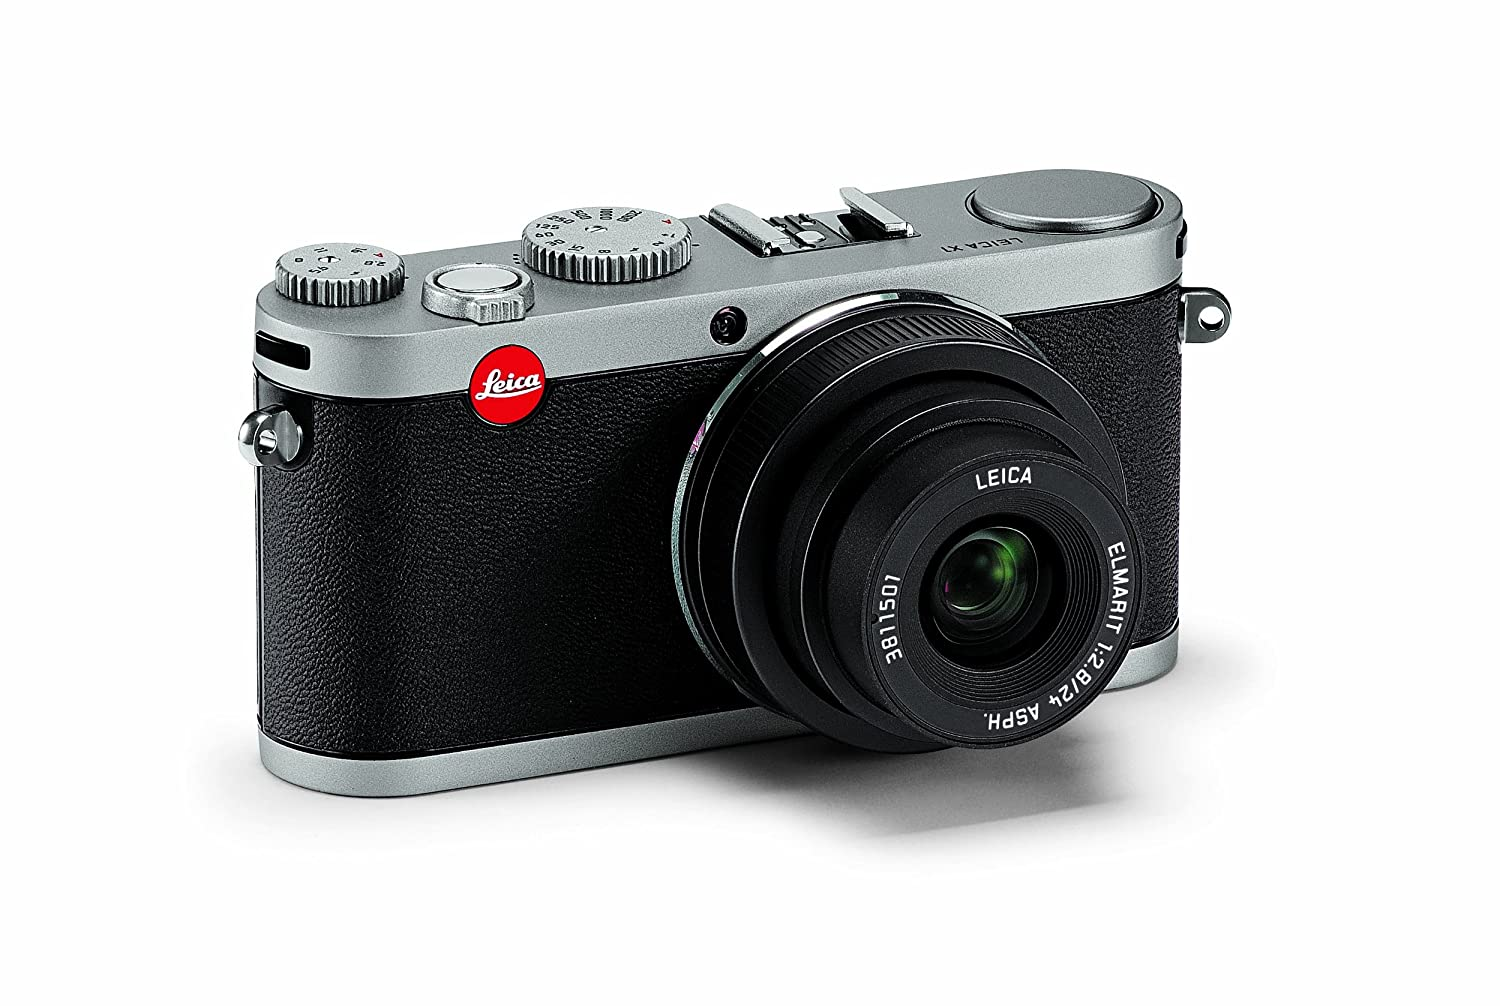 Amazon.com : Leica X1 12.2MP APS-C CMOS Digital Camera ...